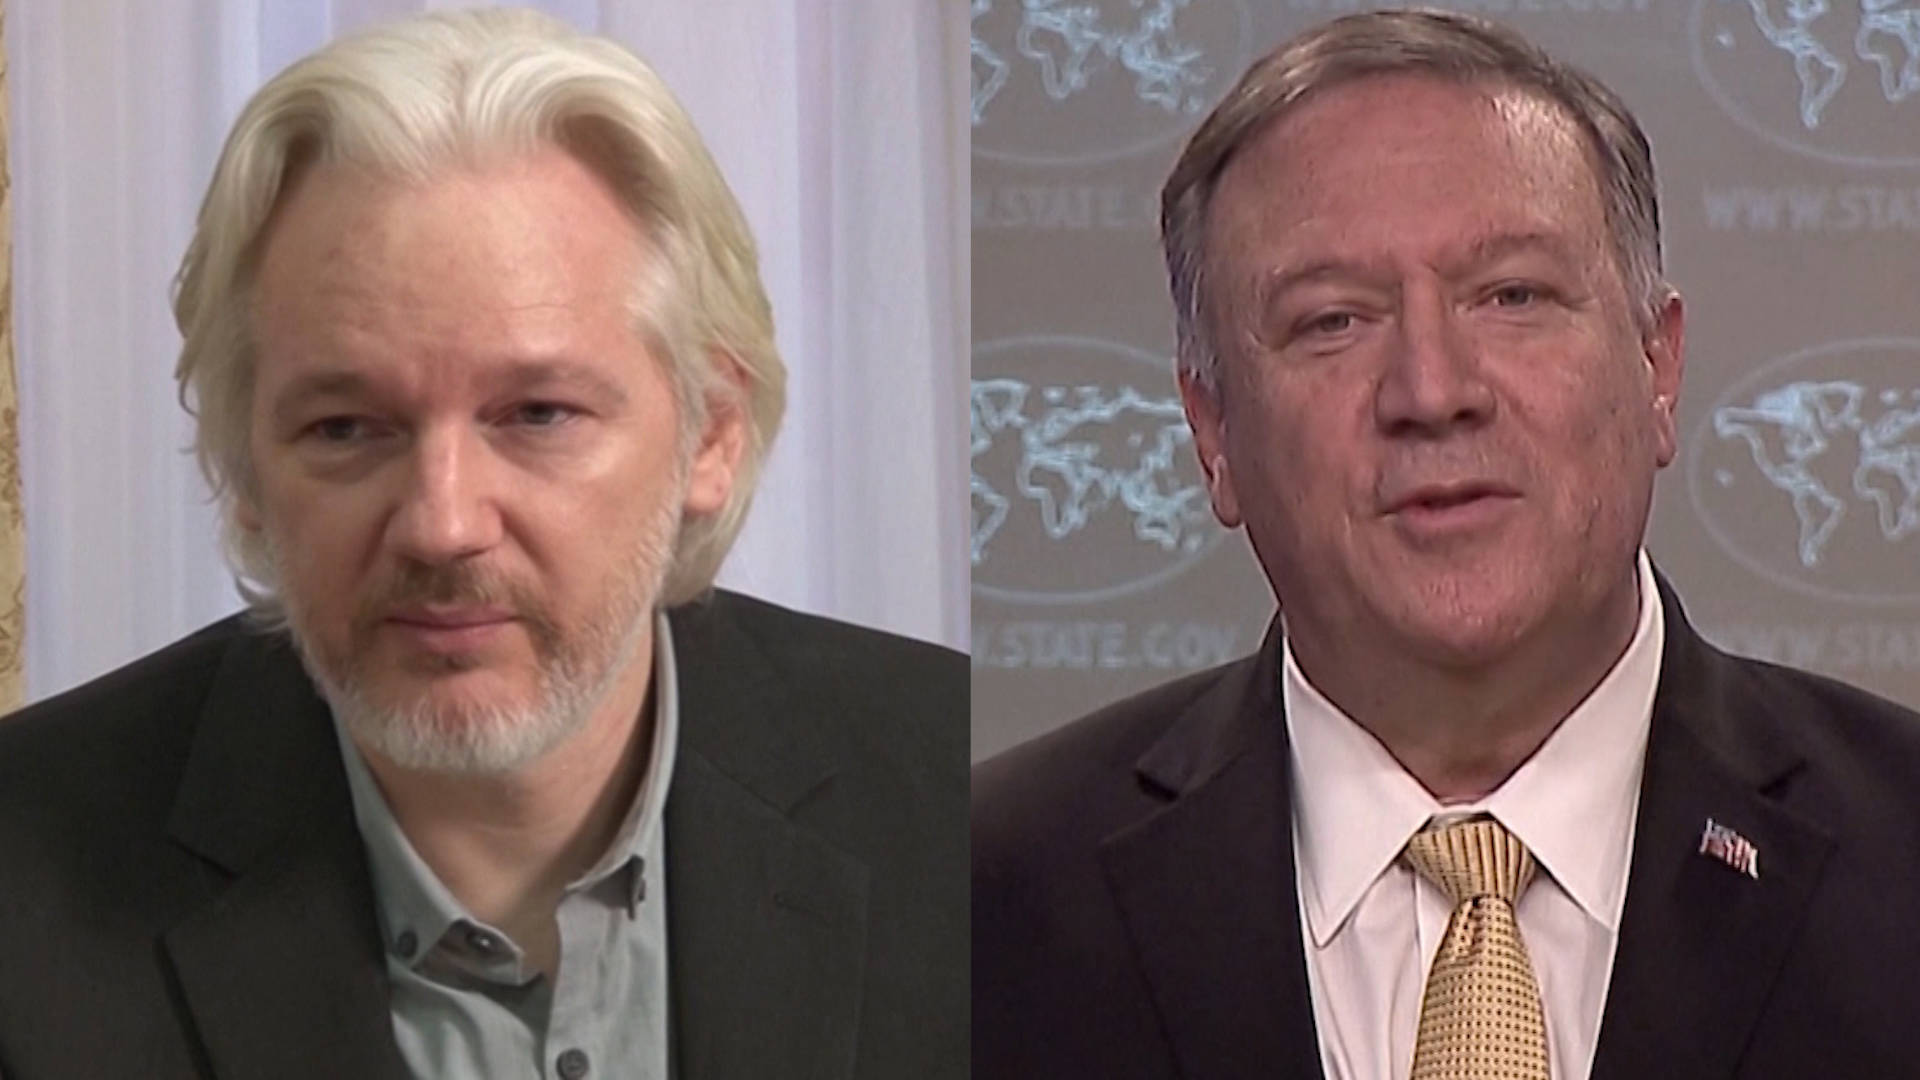 Read more about the article The Plot to Kill Julian Assange: Report Reveals CIA's Plan to Kidnap, Assassinate WikiLeaks Founder